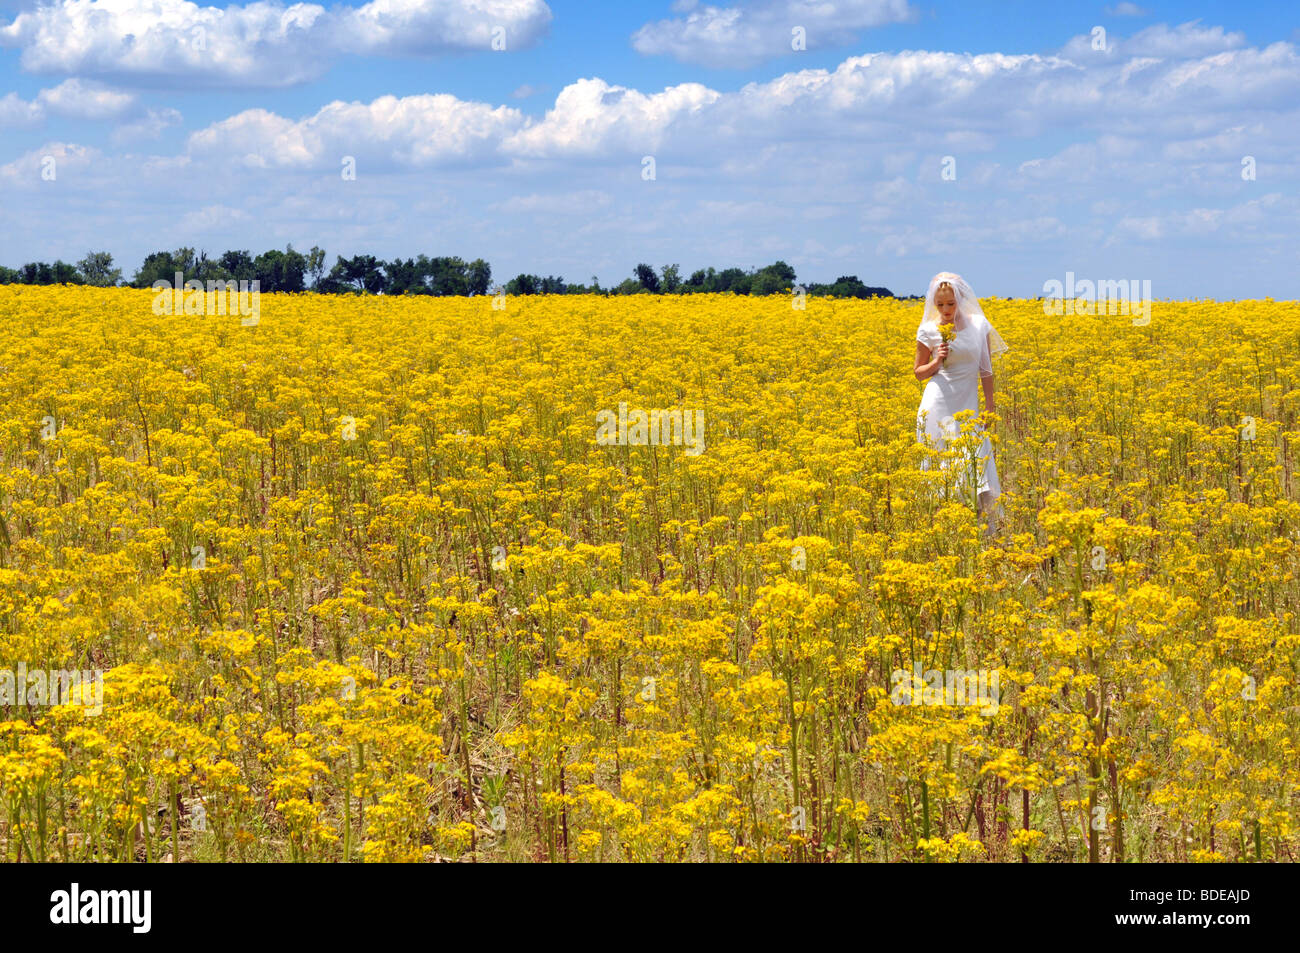 Bride in a field of yellow flowers during sunny day - Stock Image